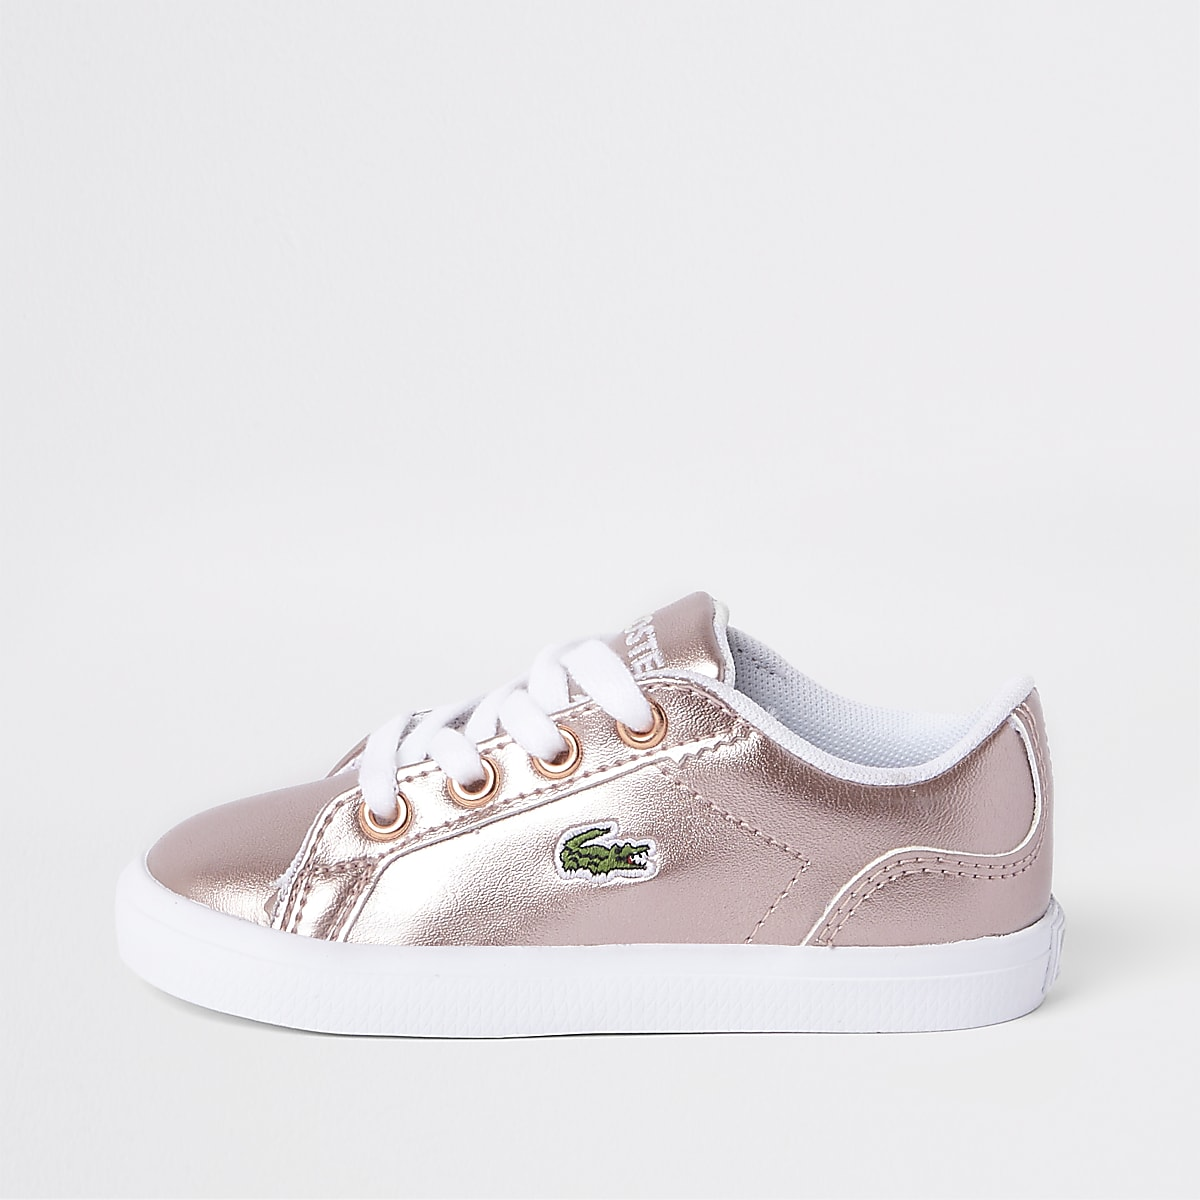 ebf19b87ee82 Mini girls Lacoste pink lace up sneakers - Baby Girls Sneakers ...